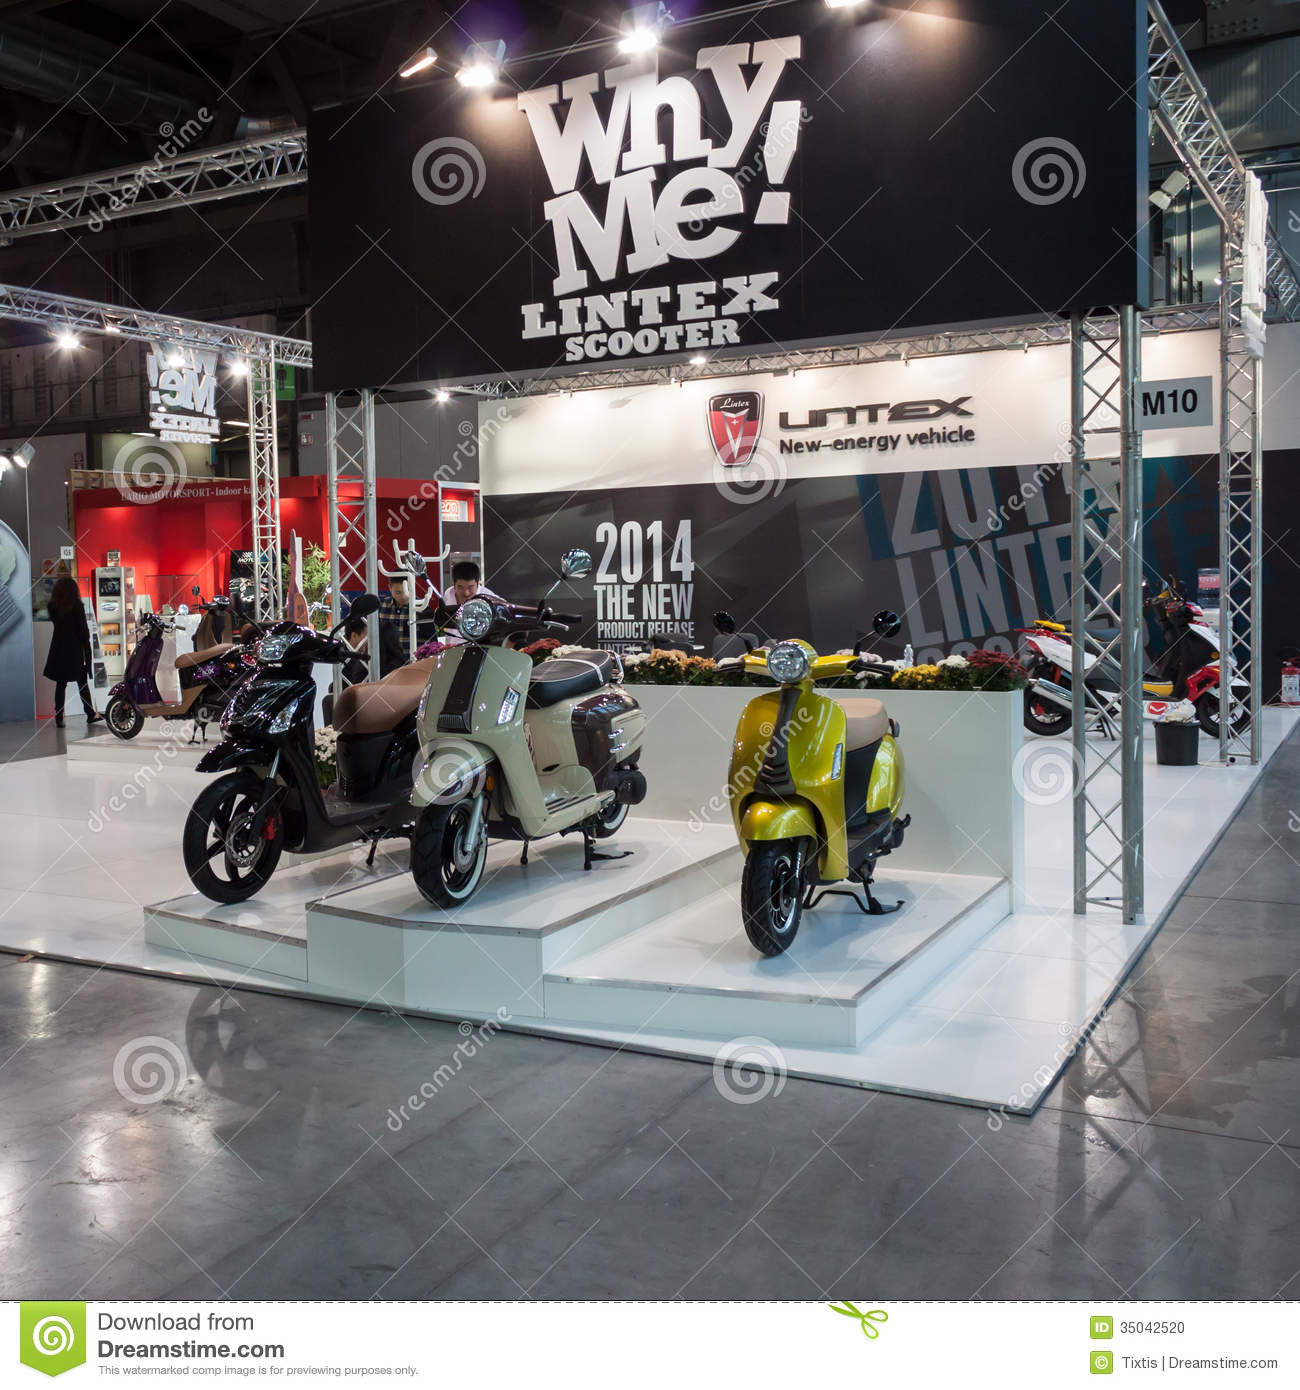 Exhibition Stand Vector Free Download : Lintex scooters at eicma in milan italy editorial